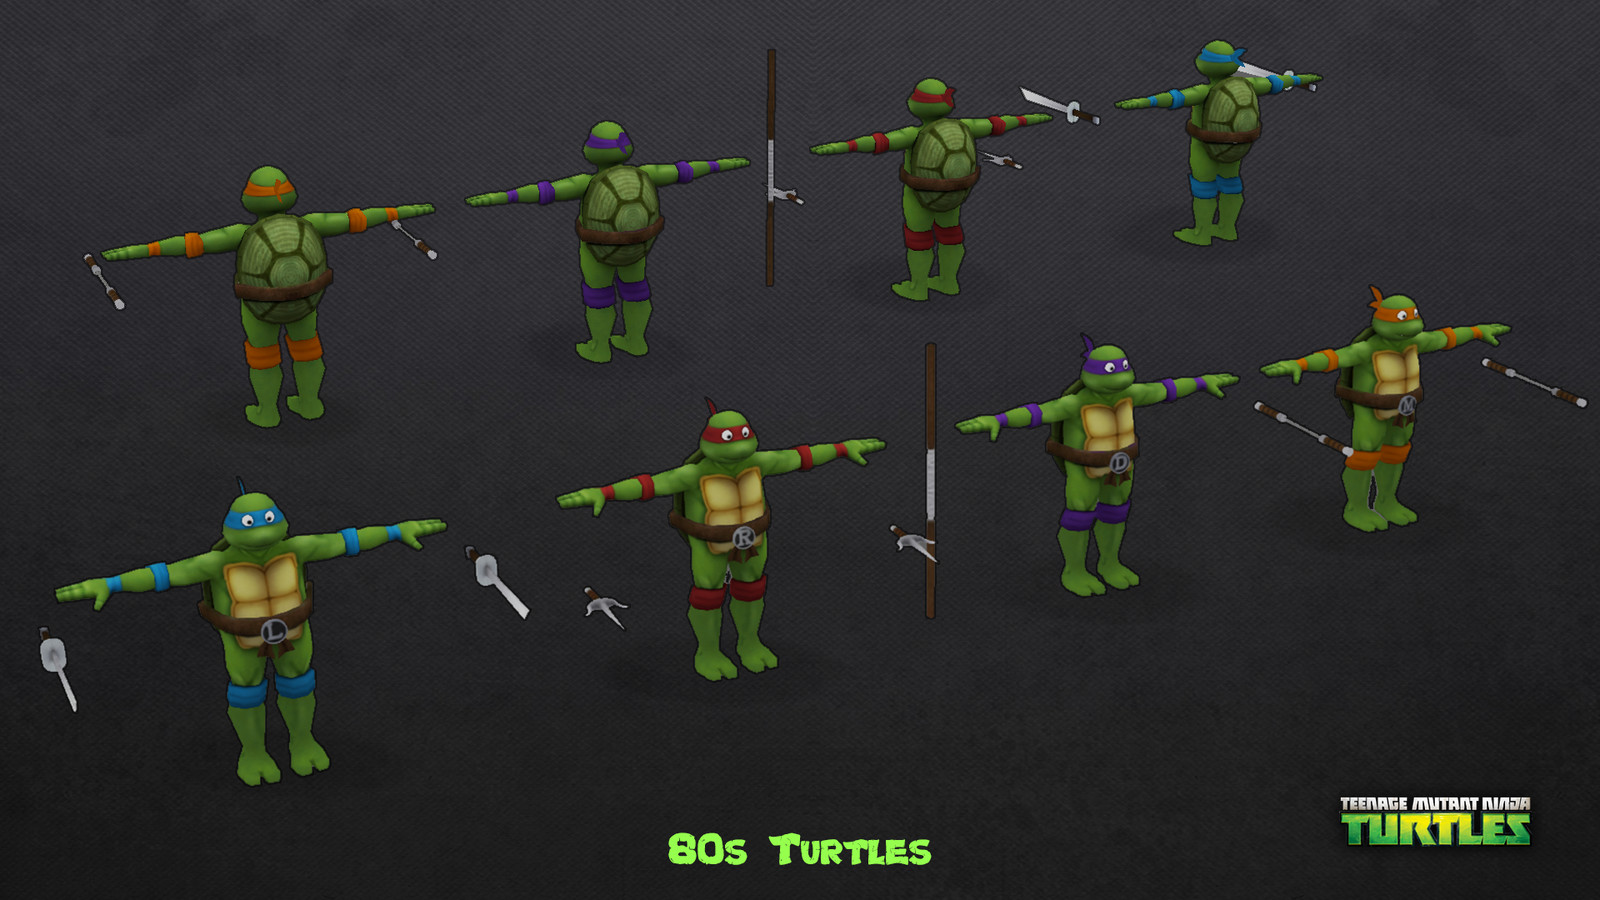 80s Turtles, all 4 of them